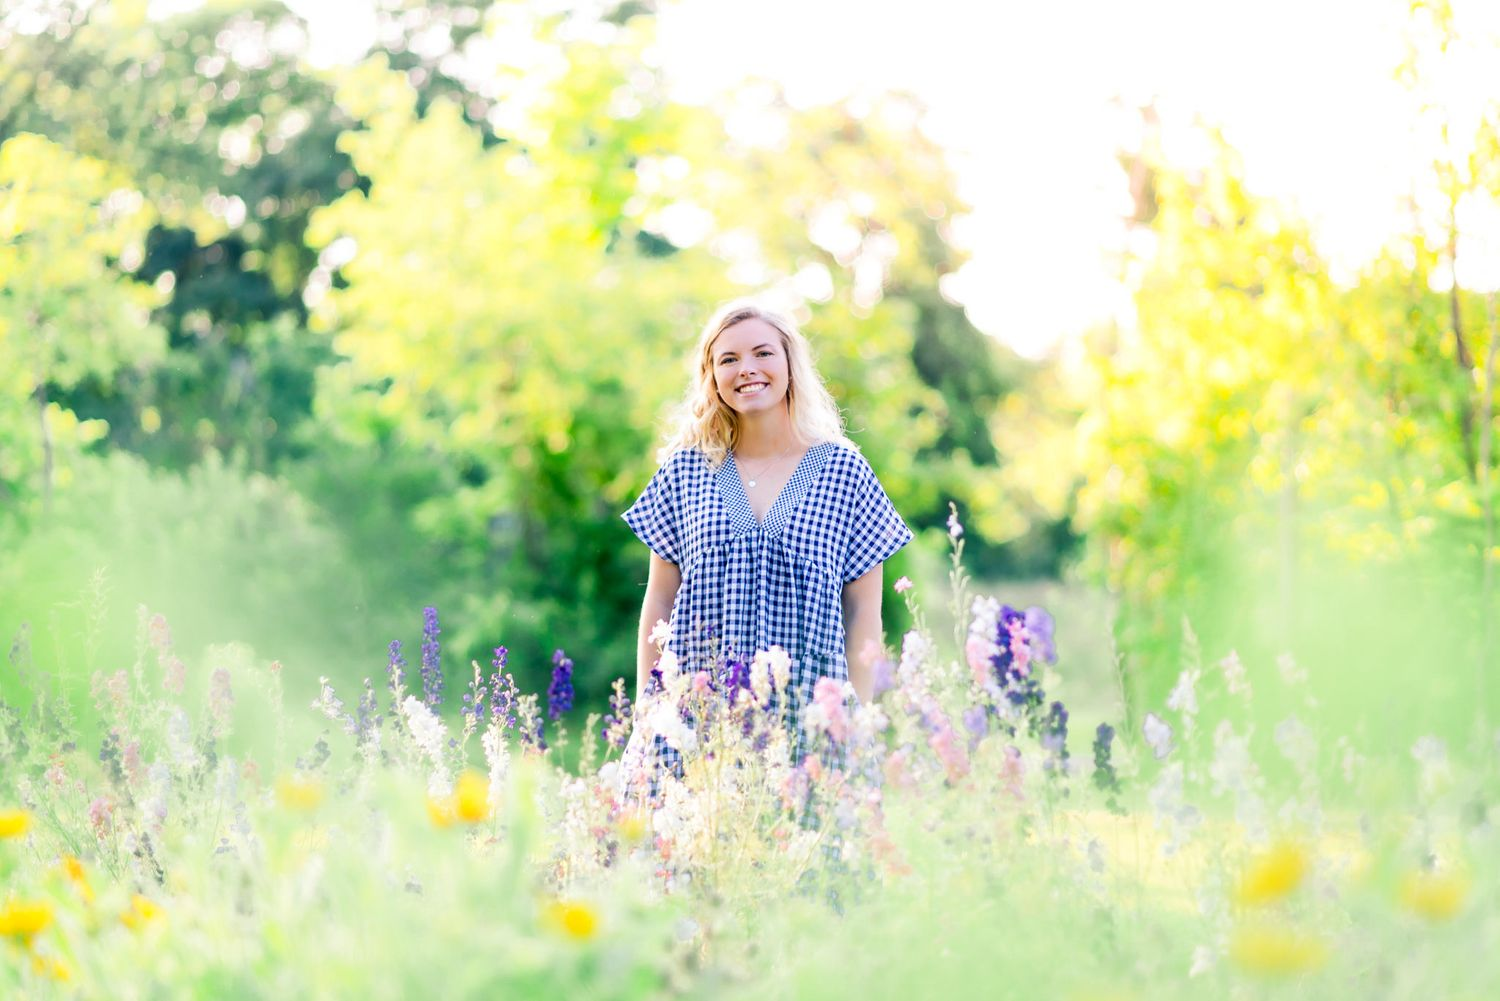 blonde woman standing in field of yellow and purple flowers at The Marmalade Lily in Ohio